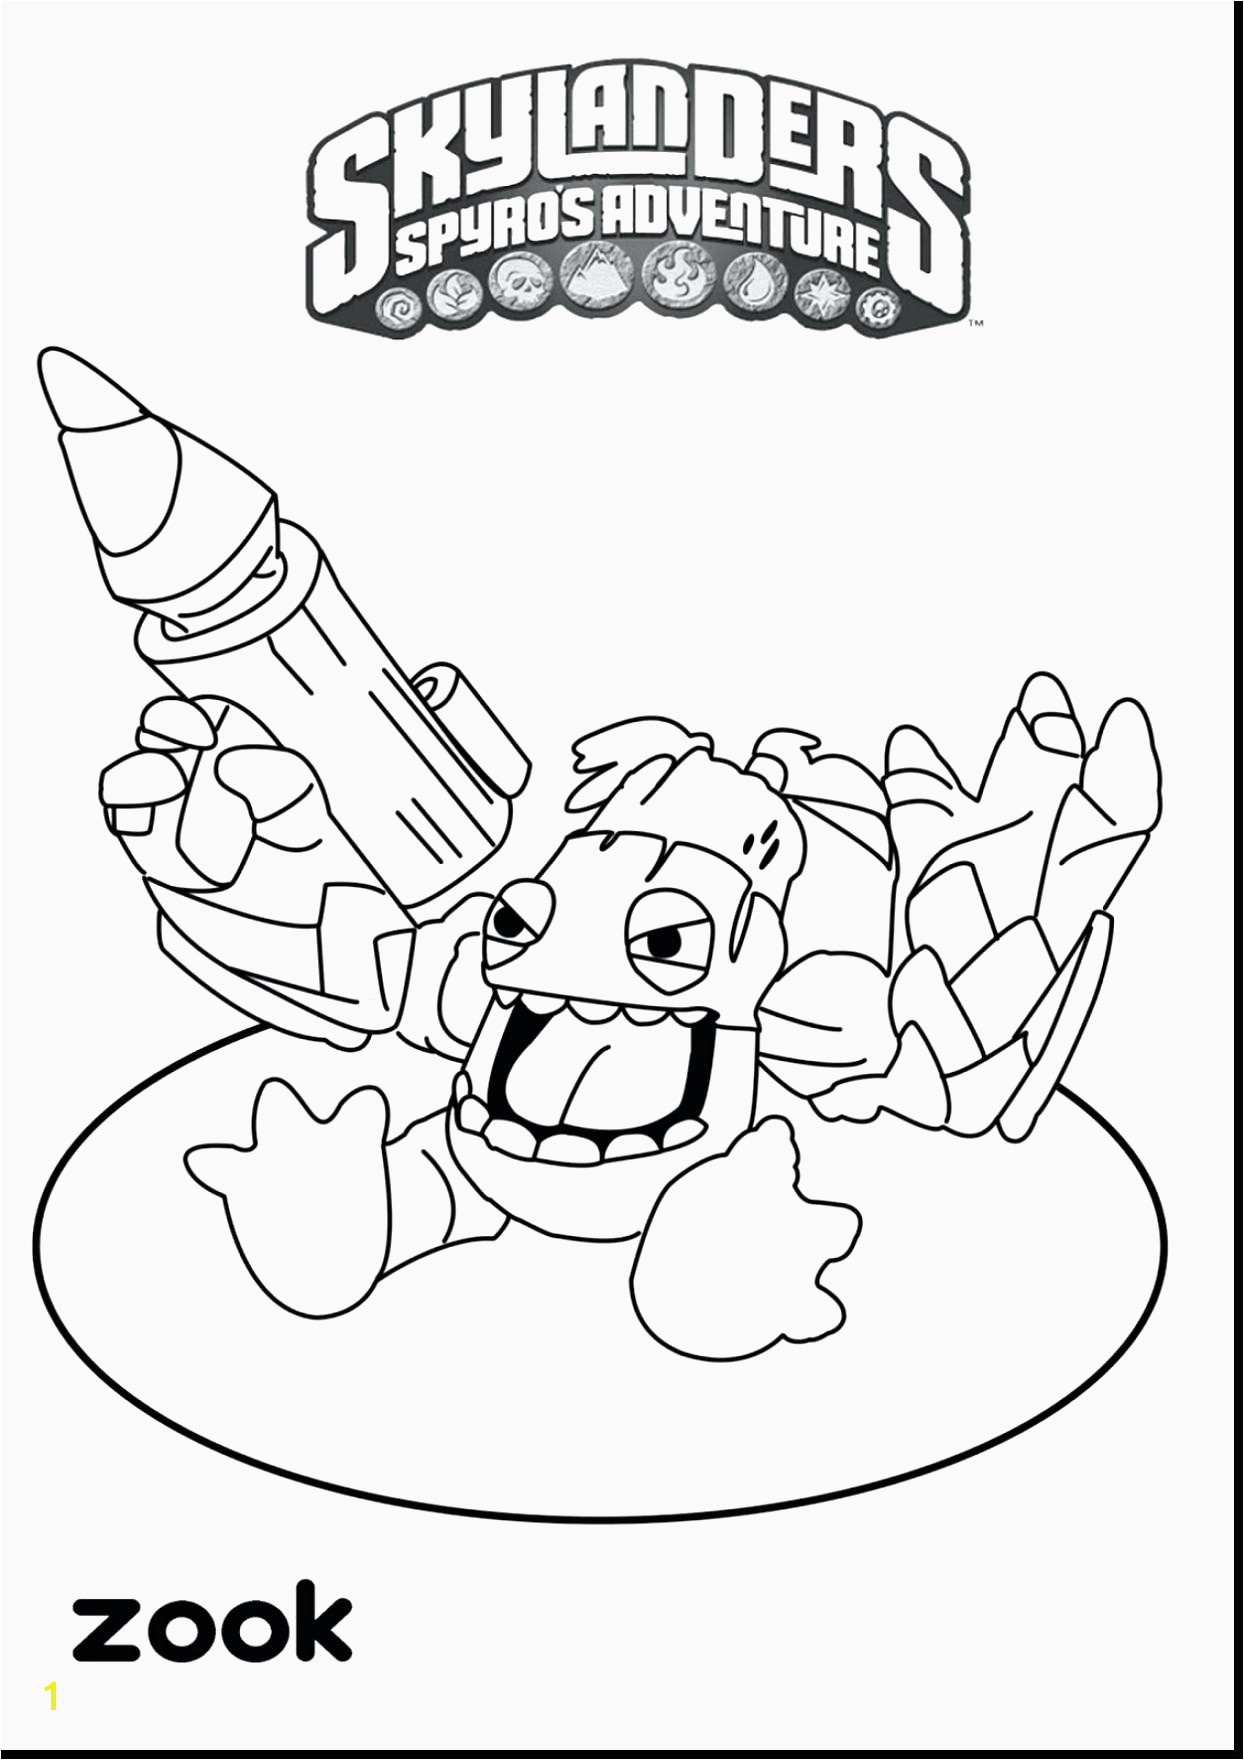 Mining Coloring Pages Coloring Pages Free Printable Coloring Pages for Children that You